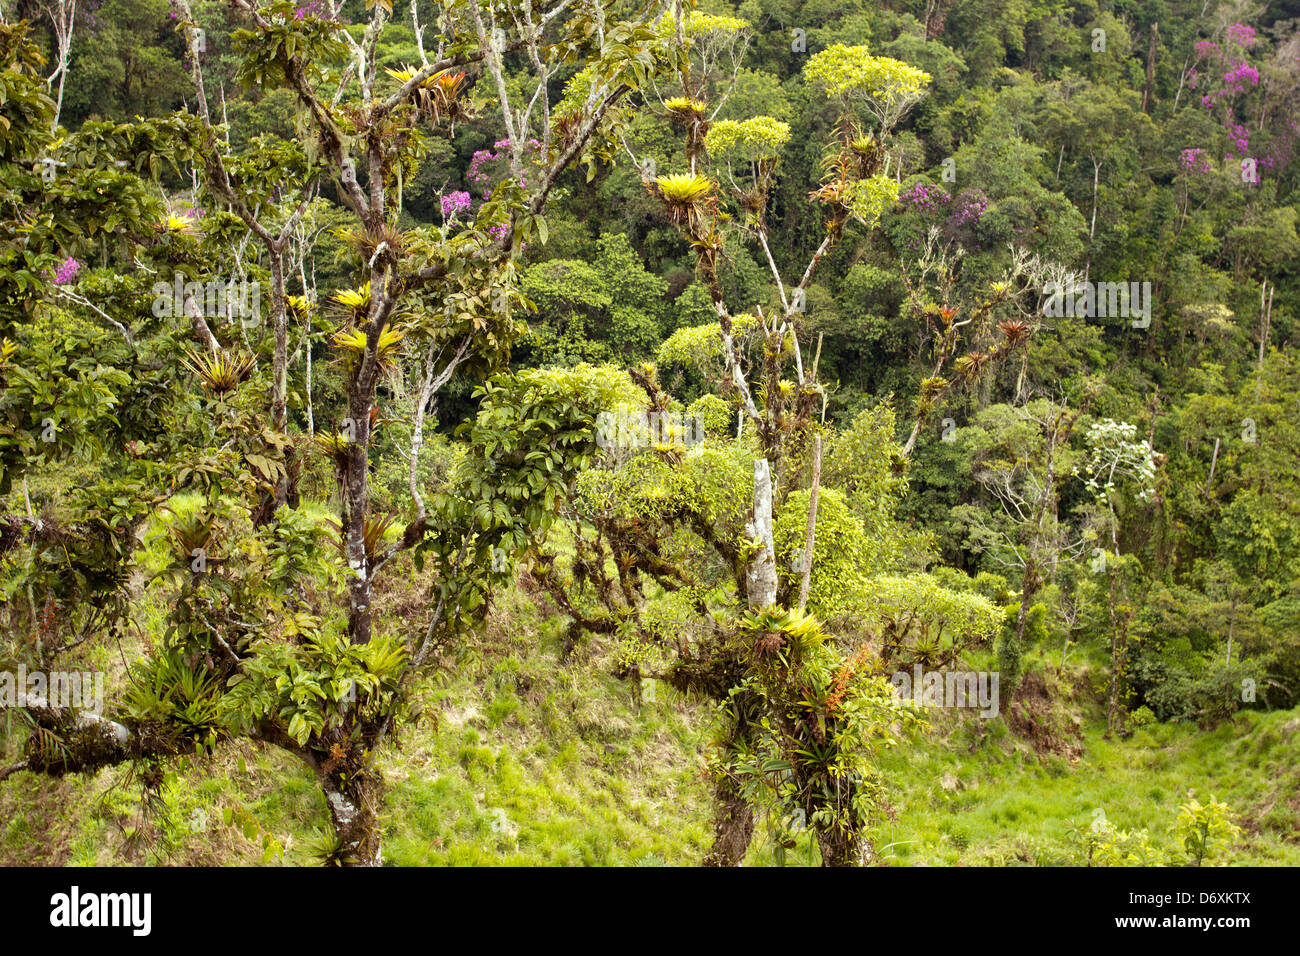 Cloudforest on the Amazonian slopes of the Andes in Ecuador - Stock Image